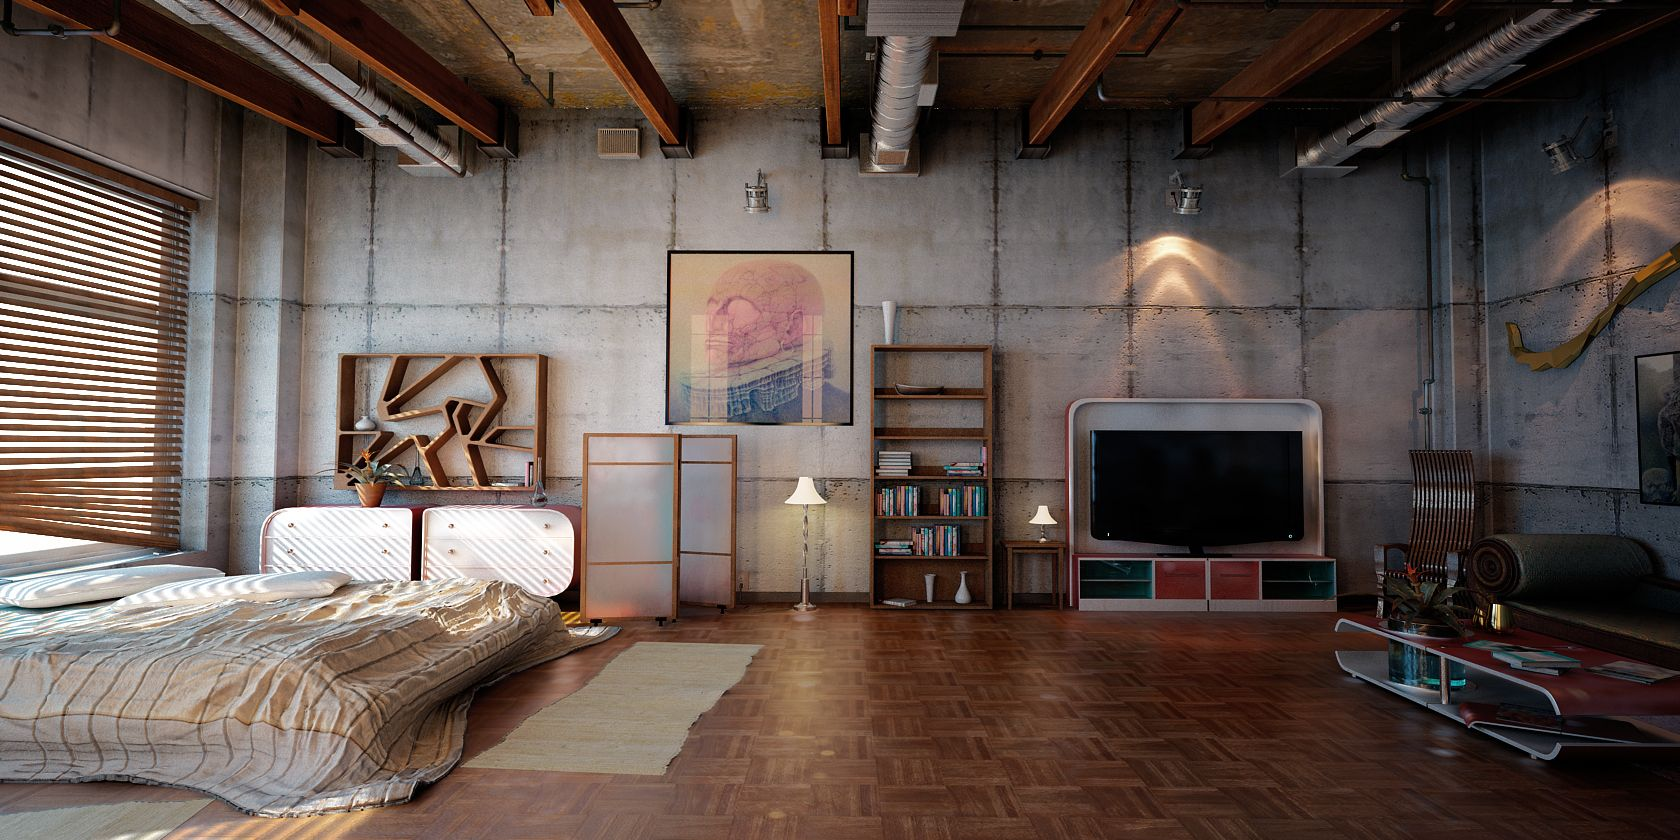 Art Studio Loft Apartment Ideas Inspiration On Industrial Loft 2 By  Denisvema Digital Art 3 Dimensional Art Scenes Apartment Design